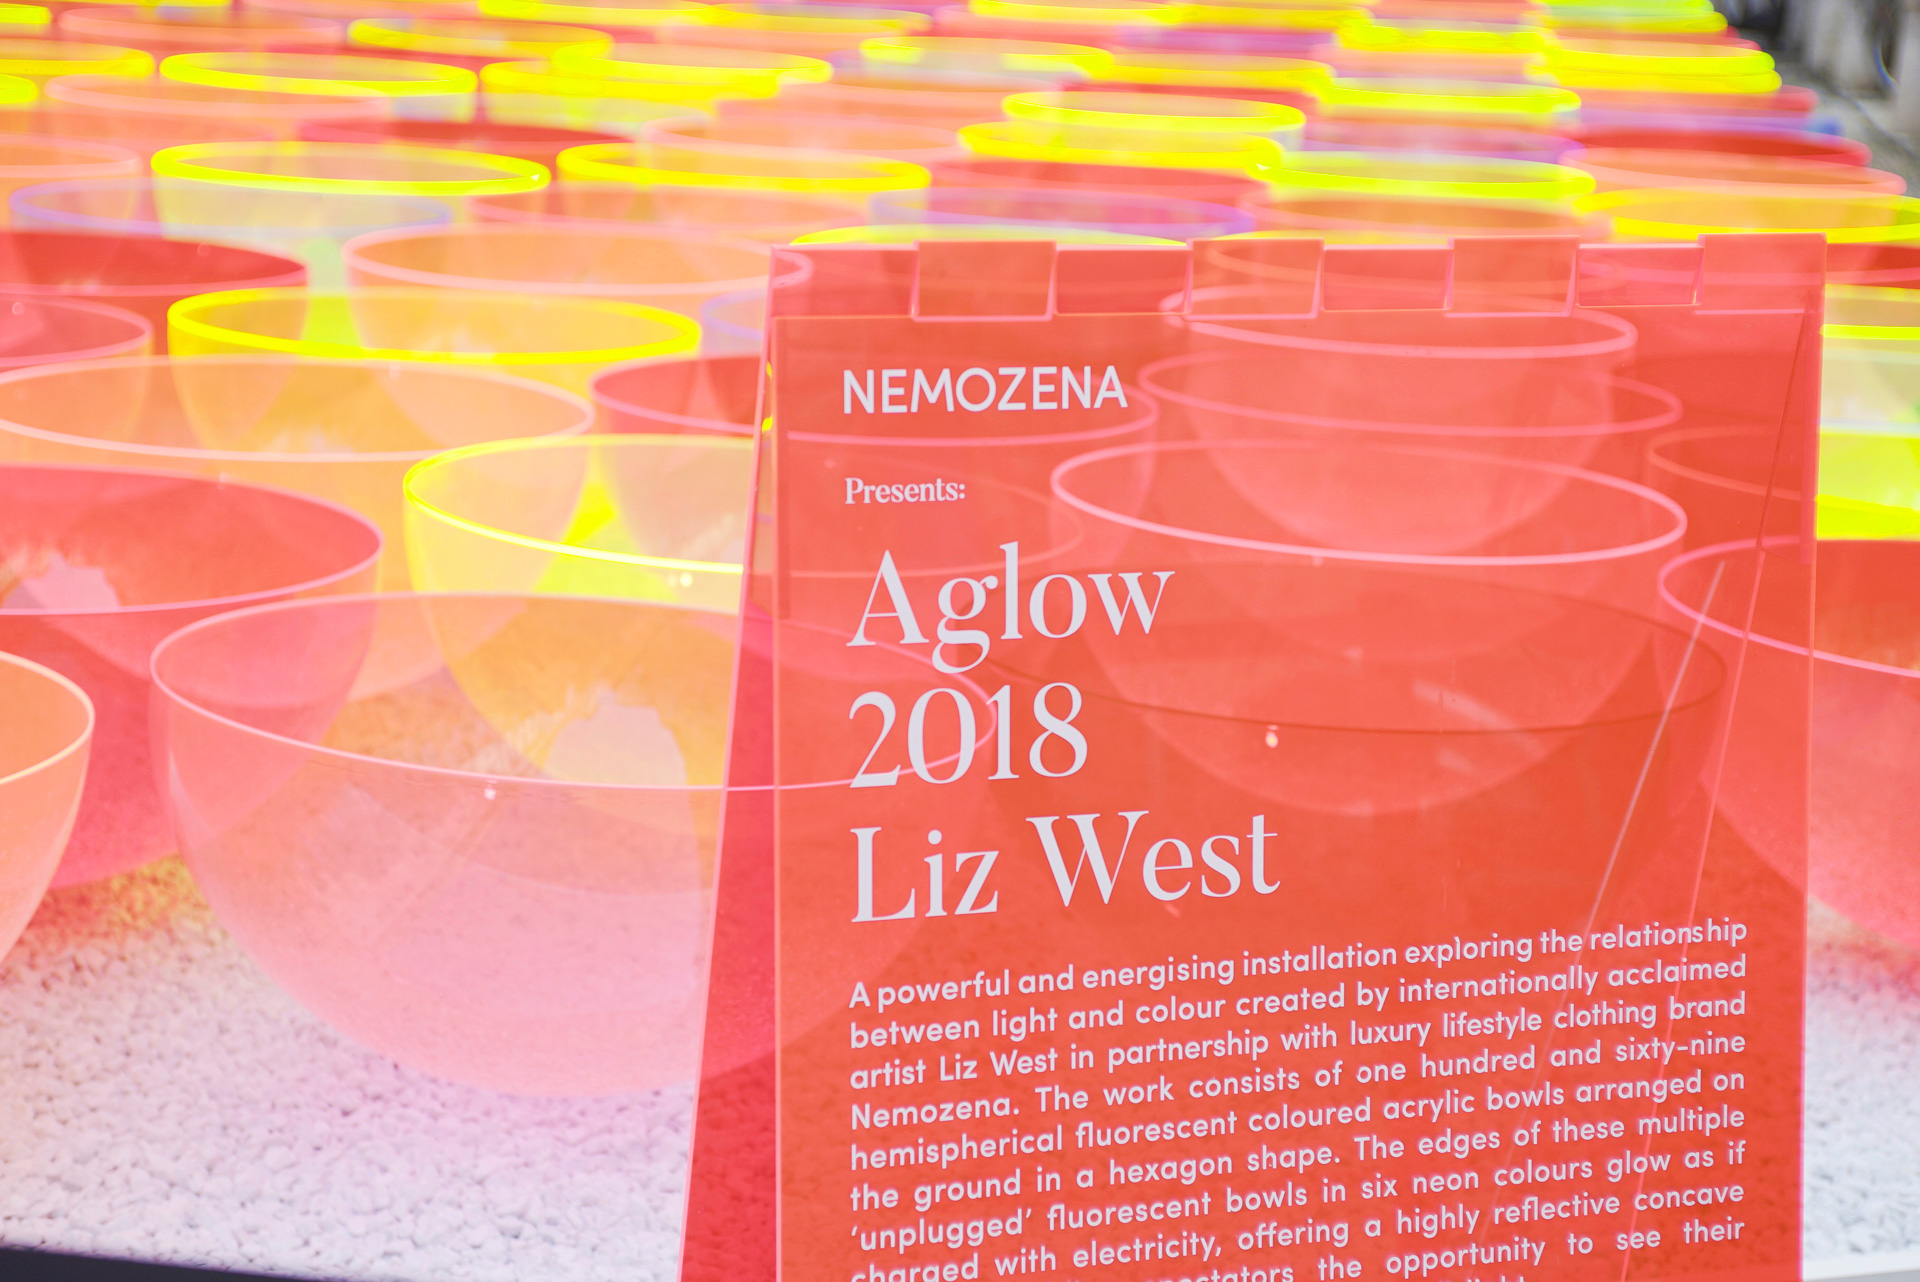 Aglow by Liz West x Nemozena